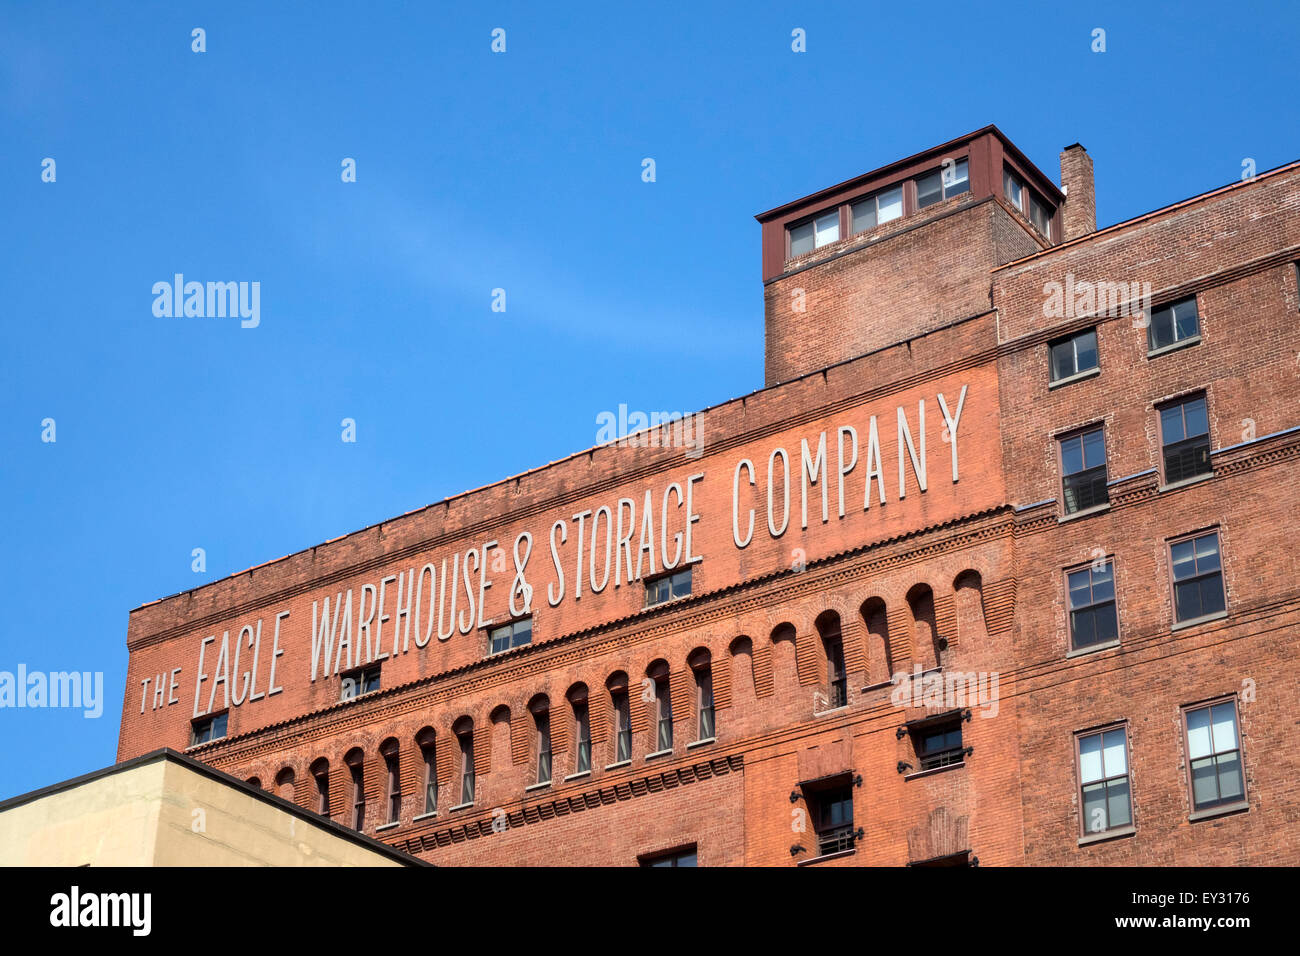 Stock Photo   The Eagle Warehouse U0026 Storage Company On Old Fulton Street In  Brooklyn, Once Part Of The Daily Newspaper, The Brooklyn Eagle